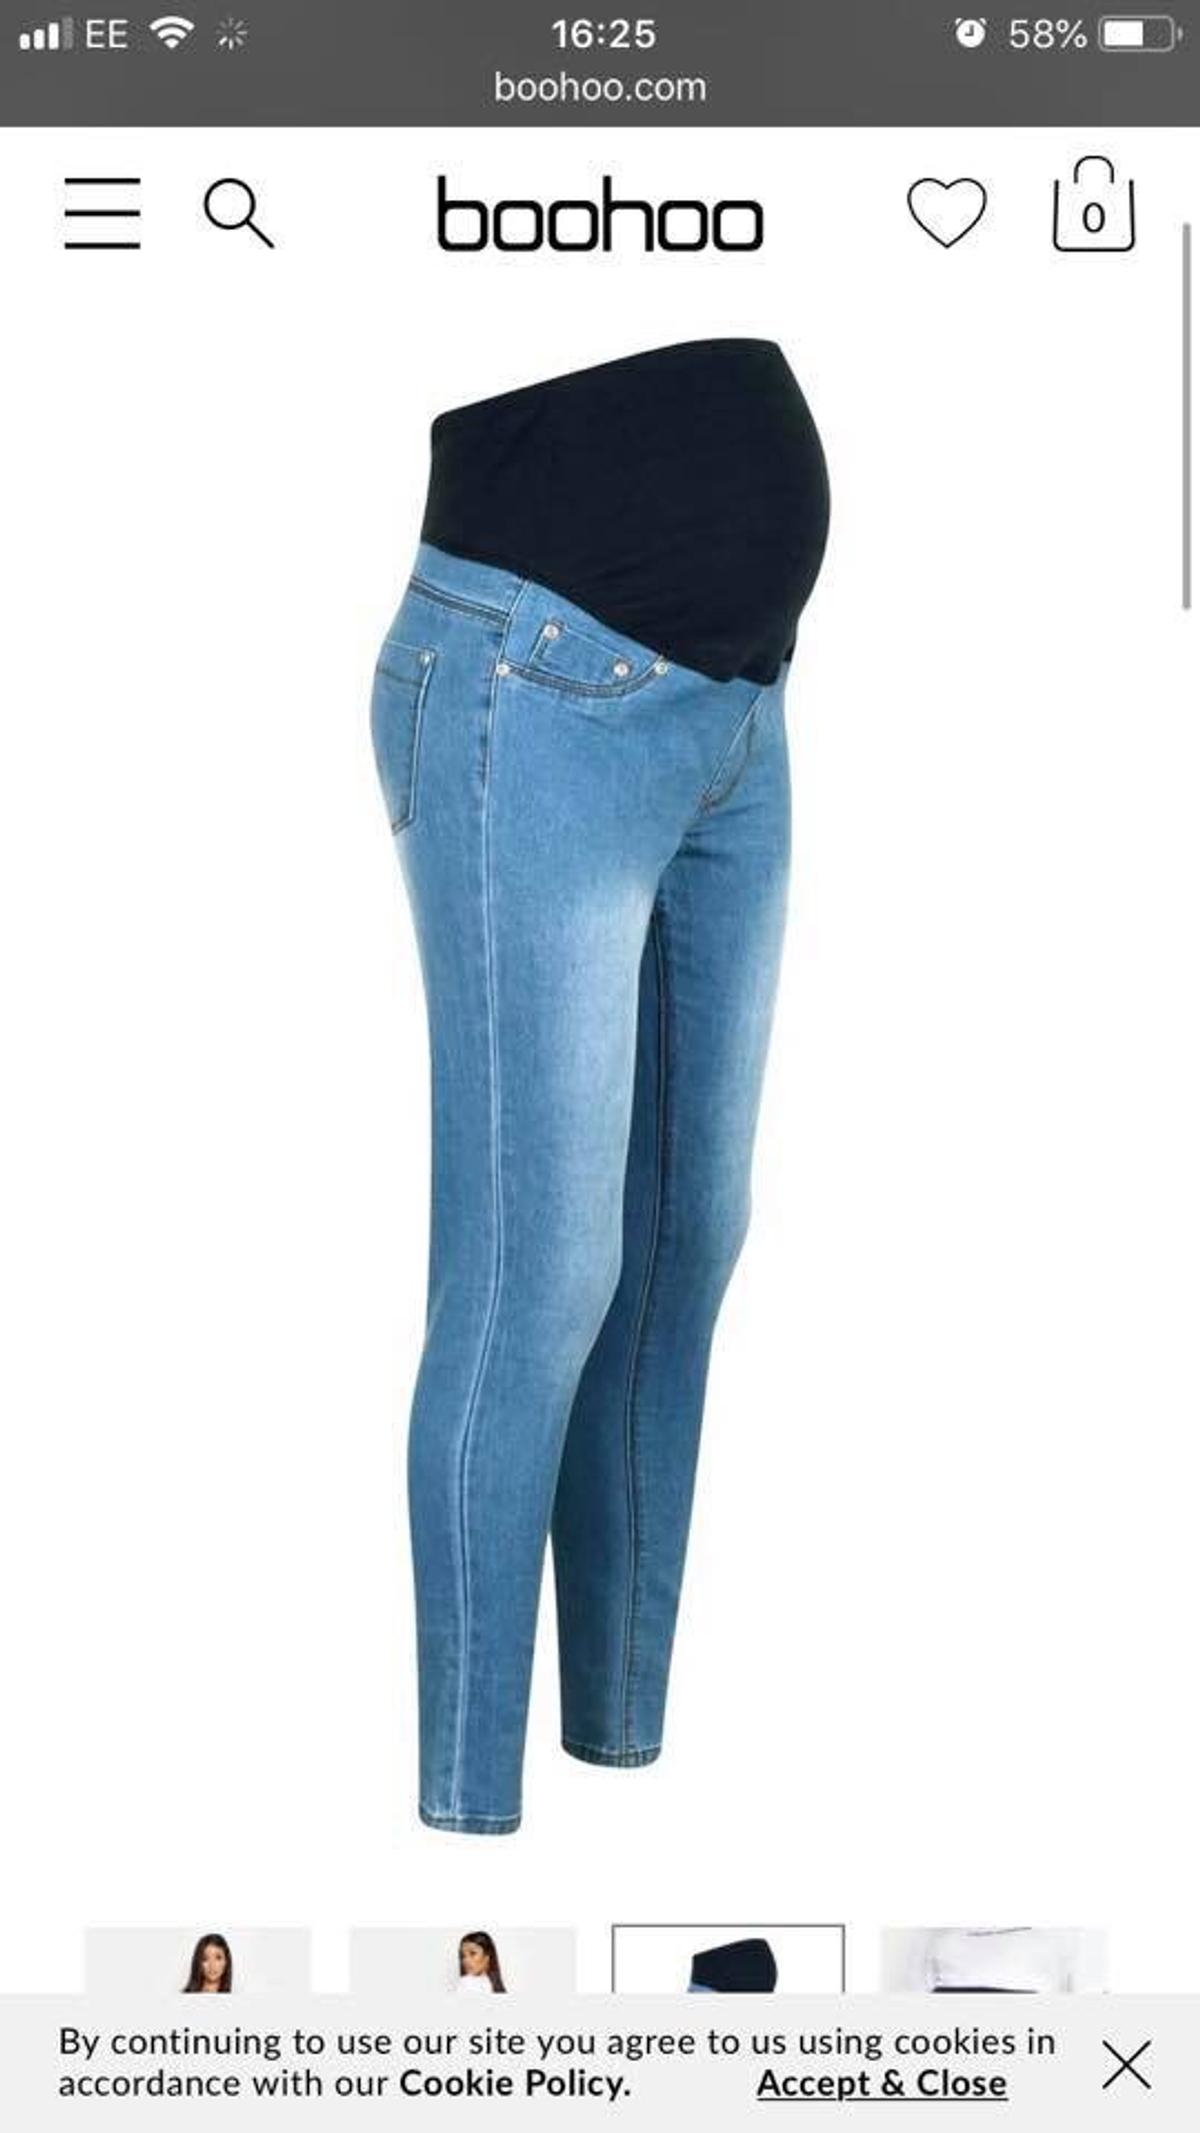 d25c127a69315 Boohoo Maternity jeans BNWT in St Helens for £15.00 for sale - Shpock